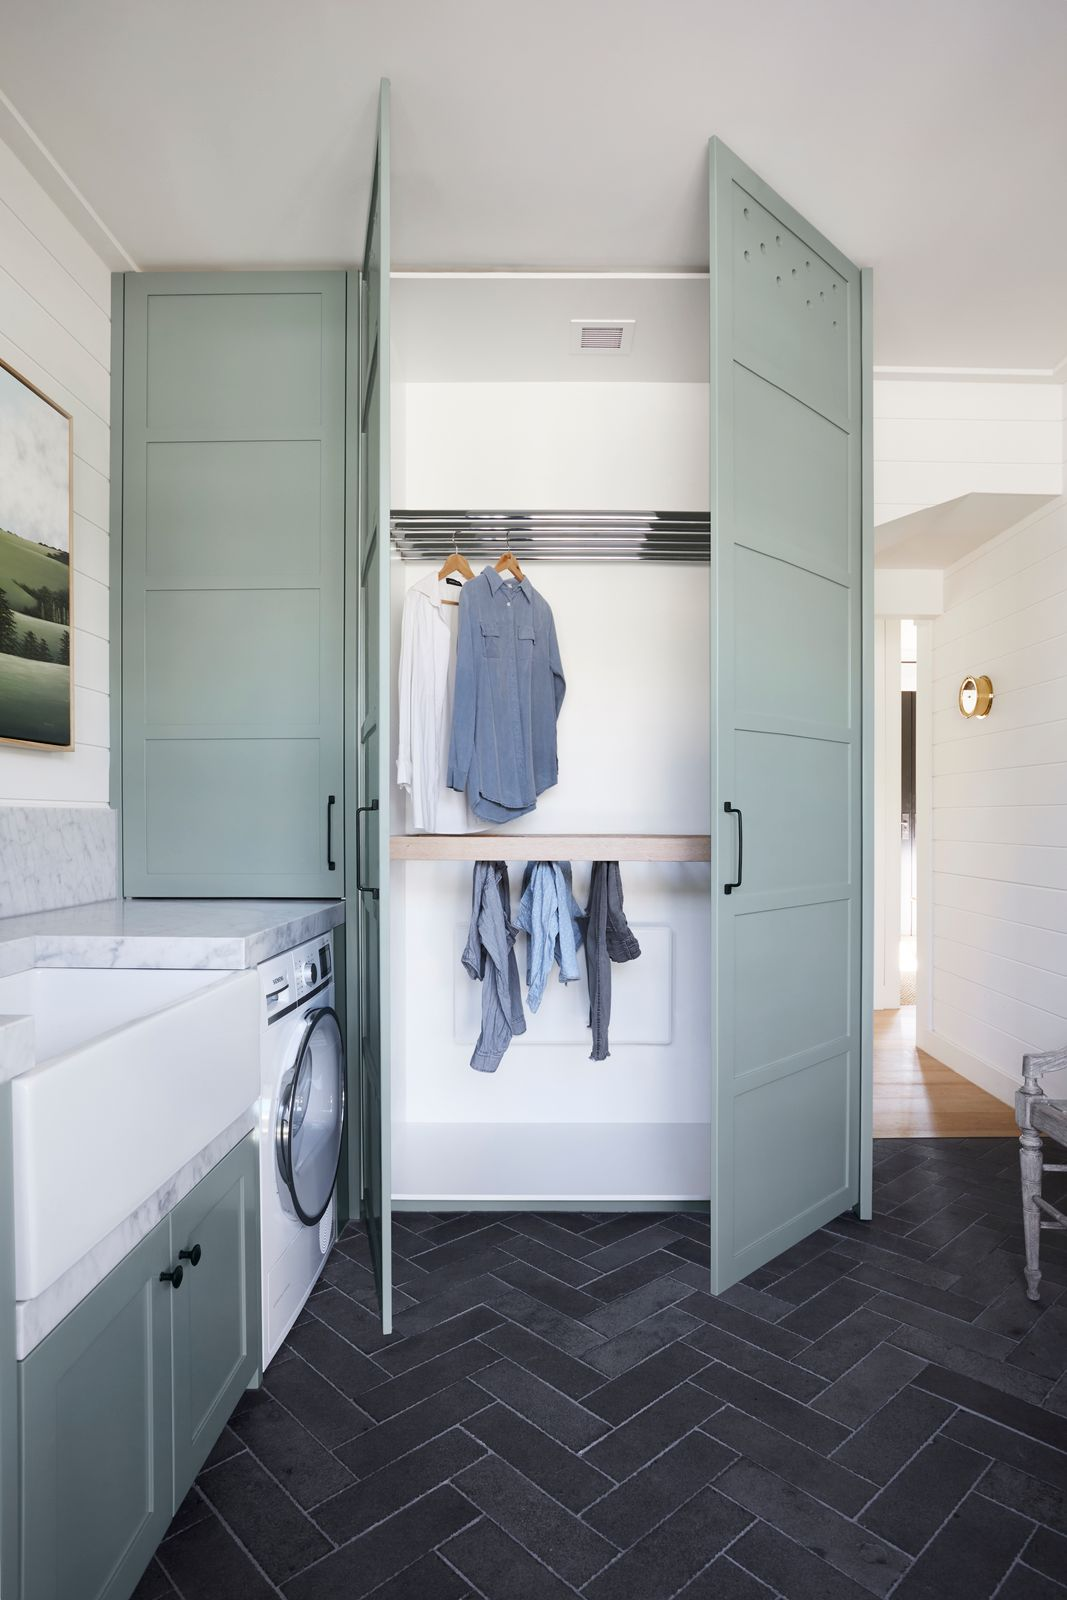 Green cabinetry in laundry mudroom room